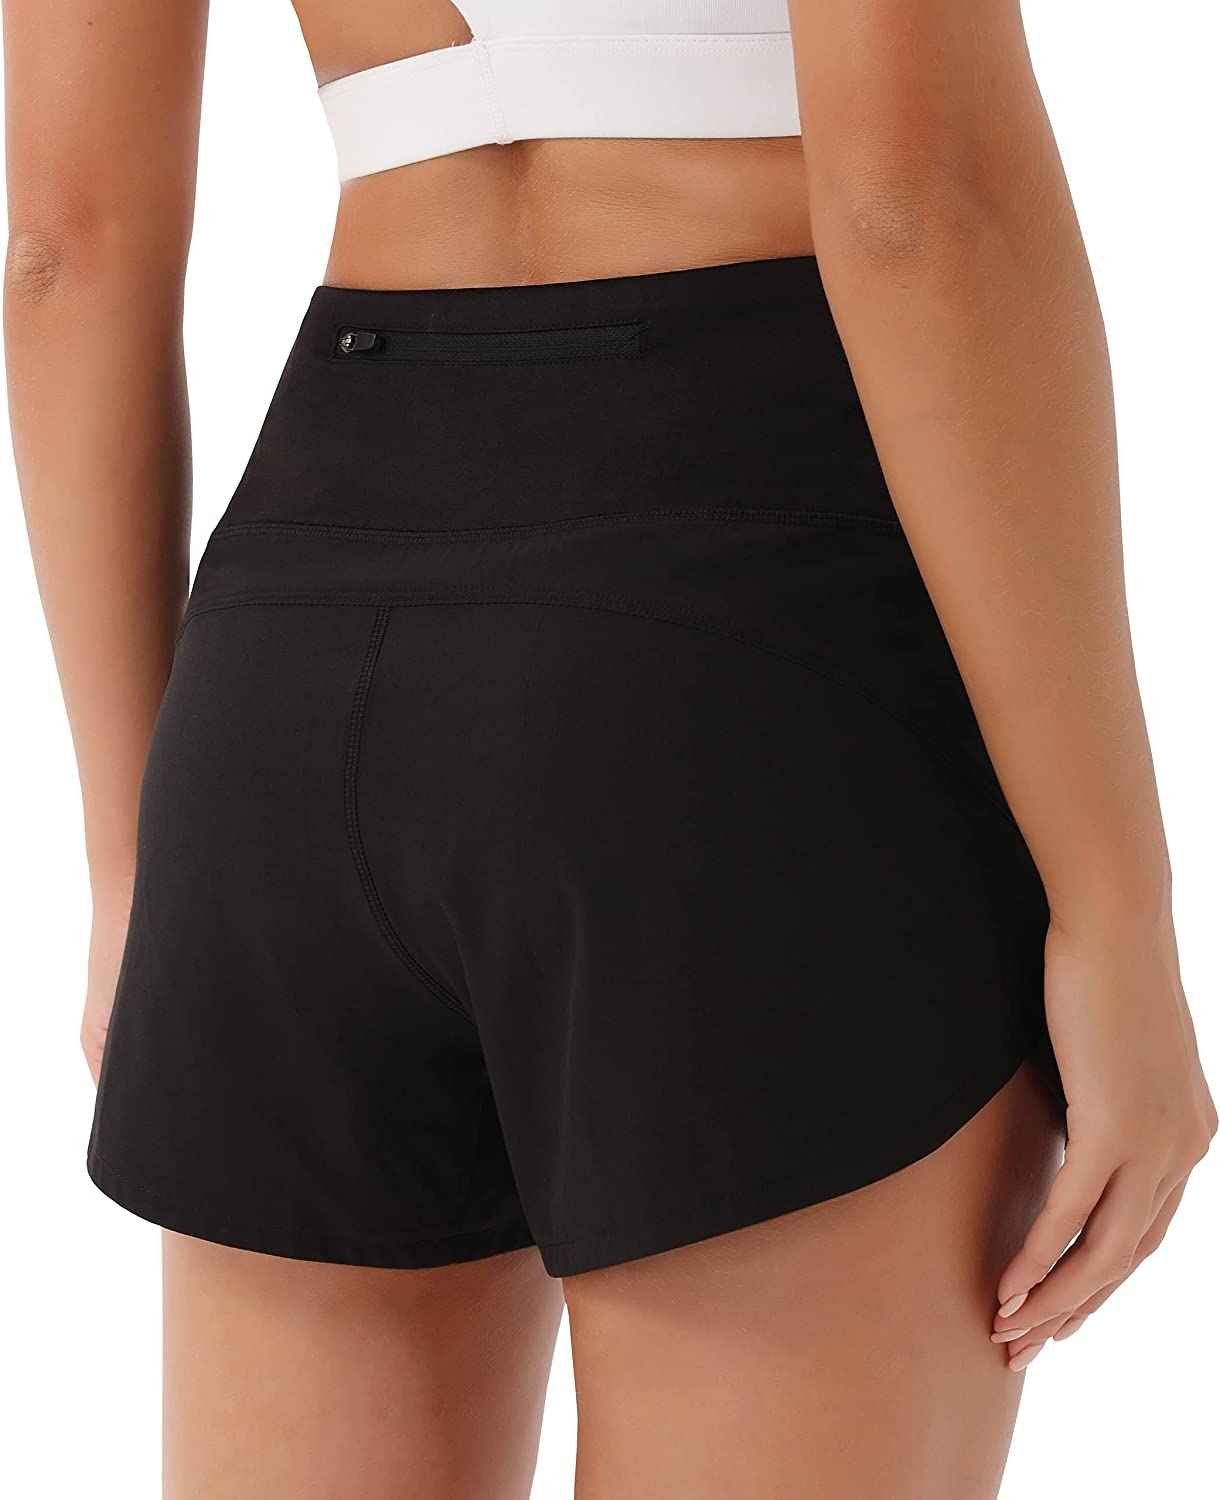 PERSIT Women's Quick Dry Running Athletic Shorts Sports Layer Lounge Elastic Waist with Back Zip Pocket & Inner Pocket : Sports & Outdoors